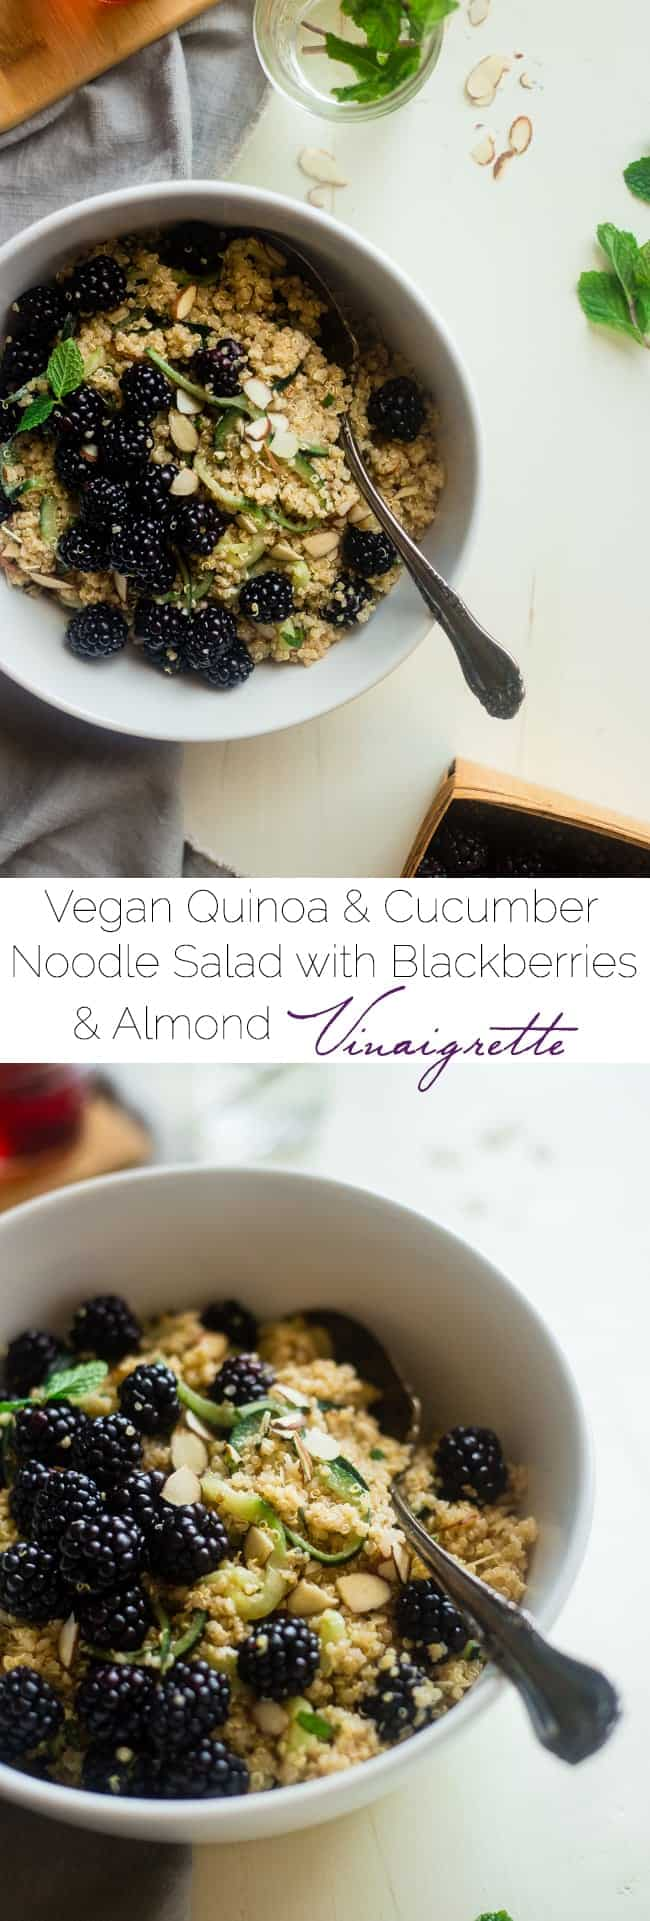 Vegan Blackberry Quinoa Salad with Cucumber Noodles and Almond Vinaigrette - This easy gluten free quinoa salad recipe has cucumber noodles, fresh mint and sweet blackberries! It's a light healthy, vegan meal for spring! | Foodfaithfitness.com | @FoodFaithFit